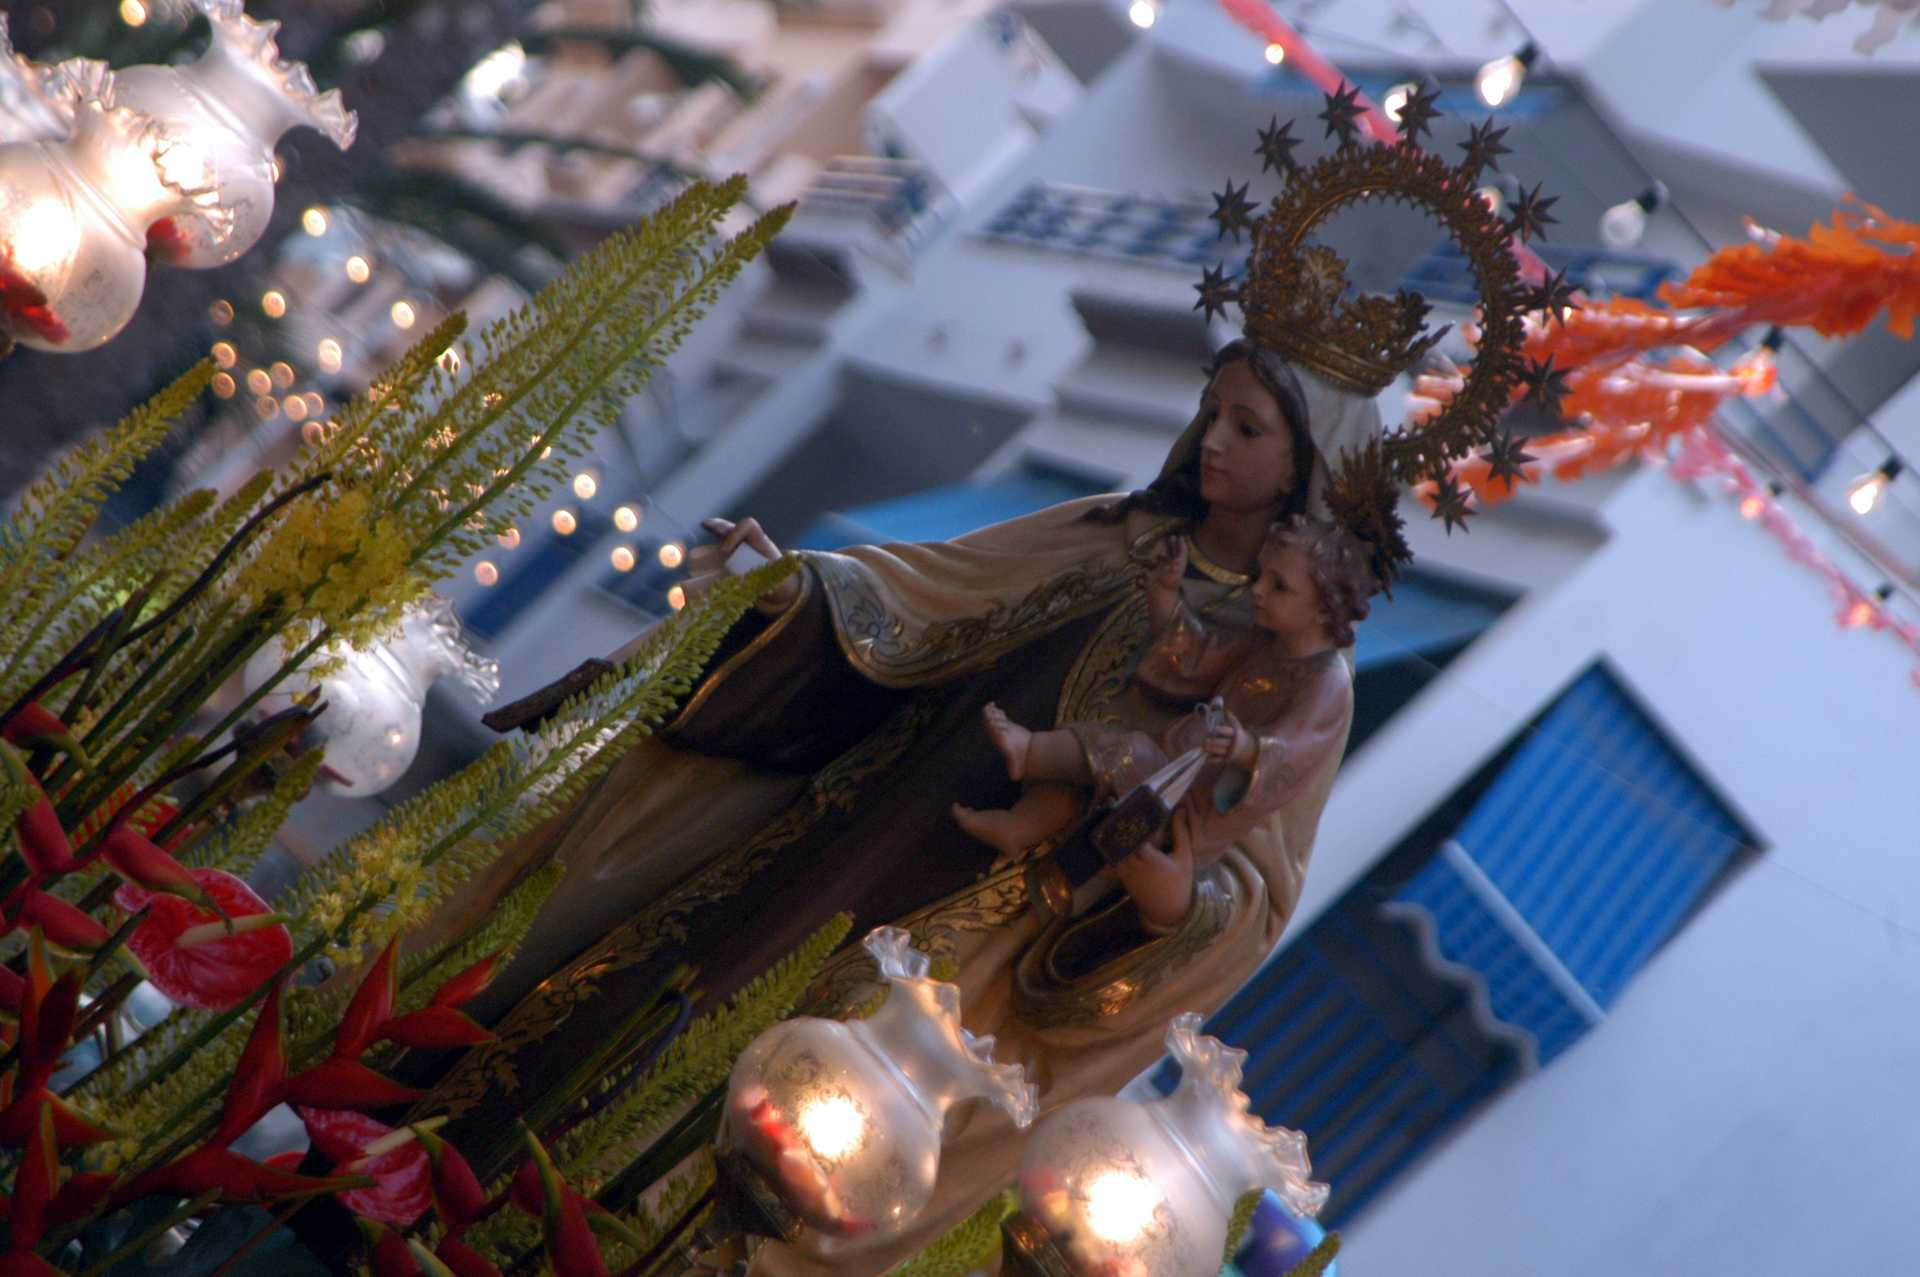 PATRON SAINT FESTIVITIES IN HONOUR OF VIRGEN DE LOS DESAMPARADOS AND VIRGEN DEL CARMEN